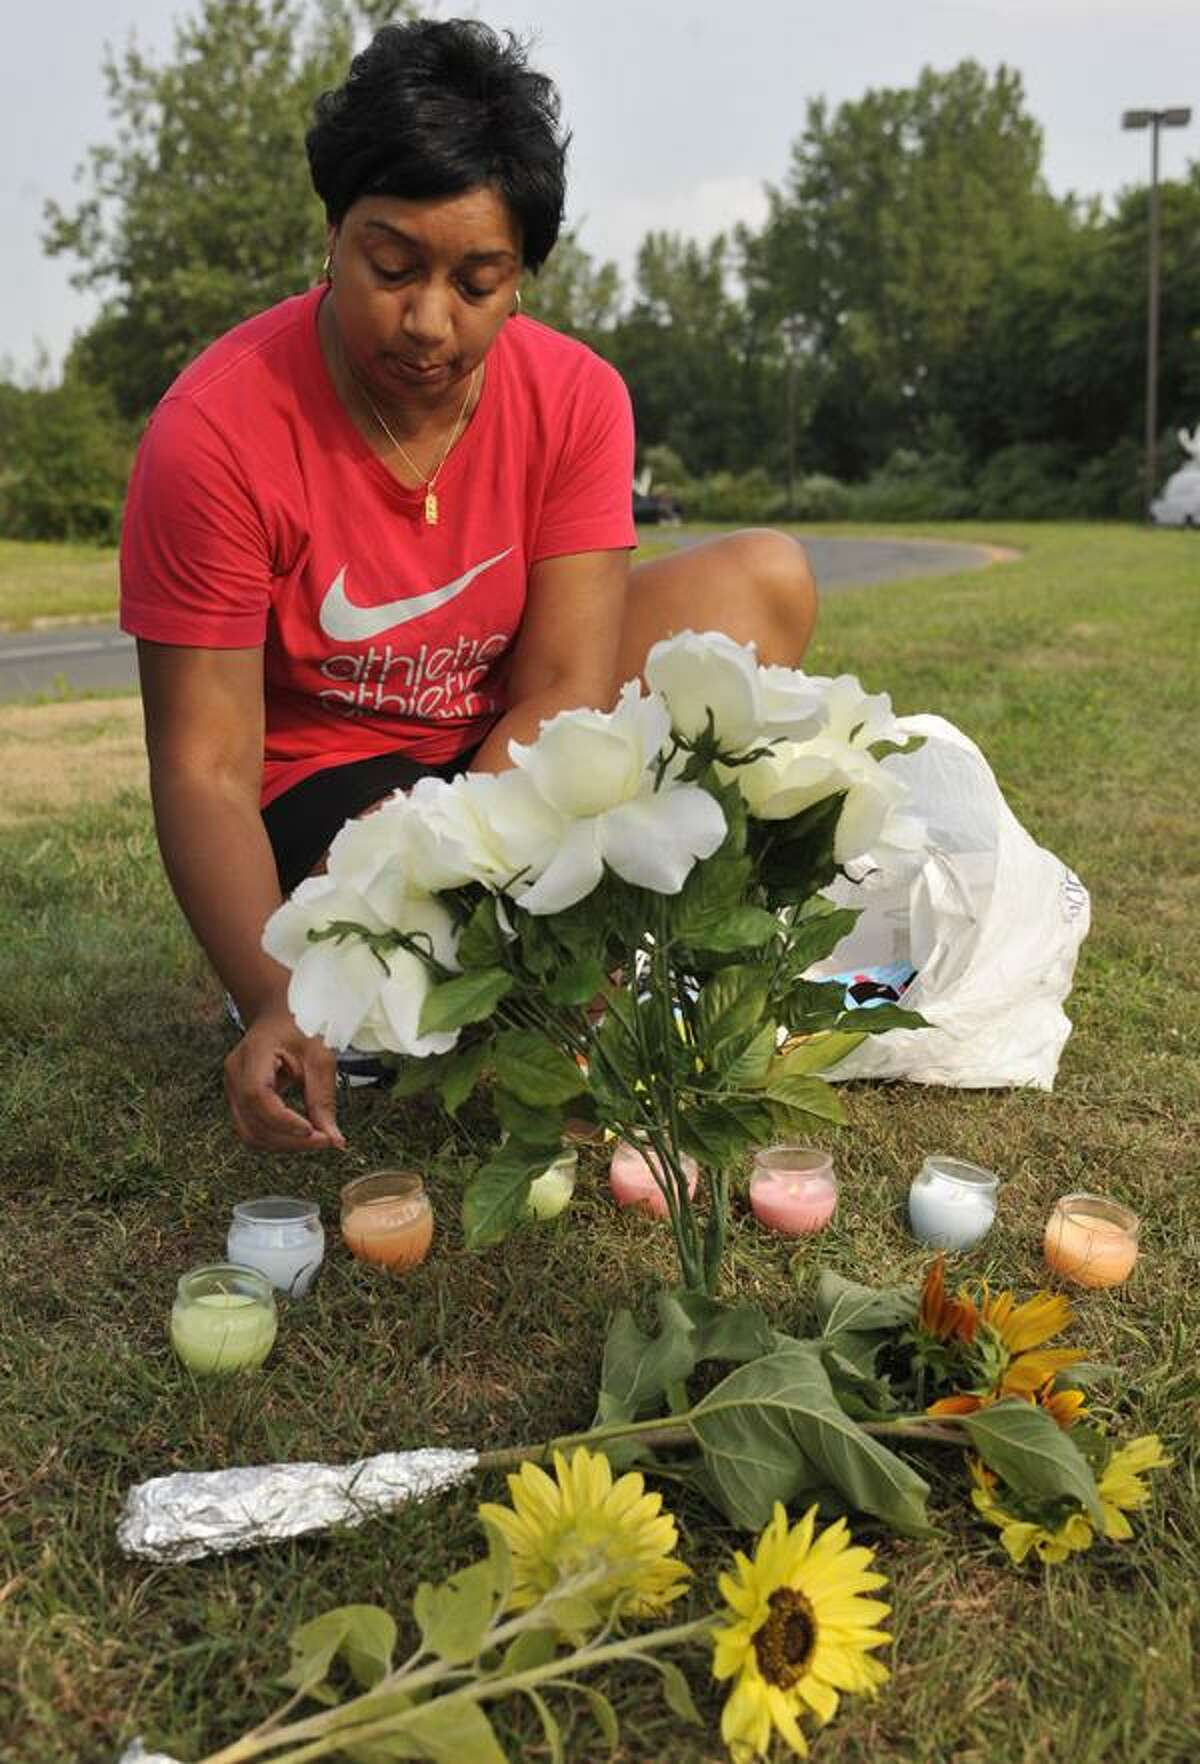 Terrie Thomas, of South Windsor, lights a candle for each victim killed outside of Hartford Distributors in Manchester, Conn., Wednesday, Aug. 4, 2010. Omar S. Thornton, a driver for Hartford Distributors, killed eight people, plus himself at the beer distribution company in Connecticut on Tuesday morning. (AP Photo/Jessica Hill)